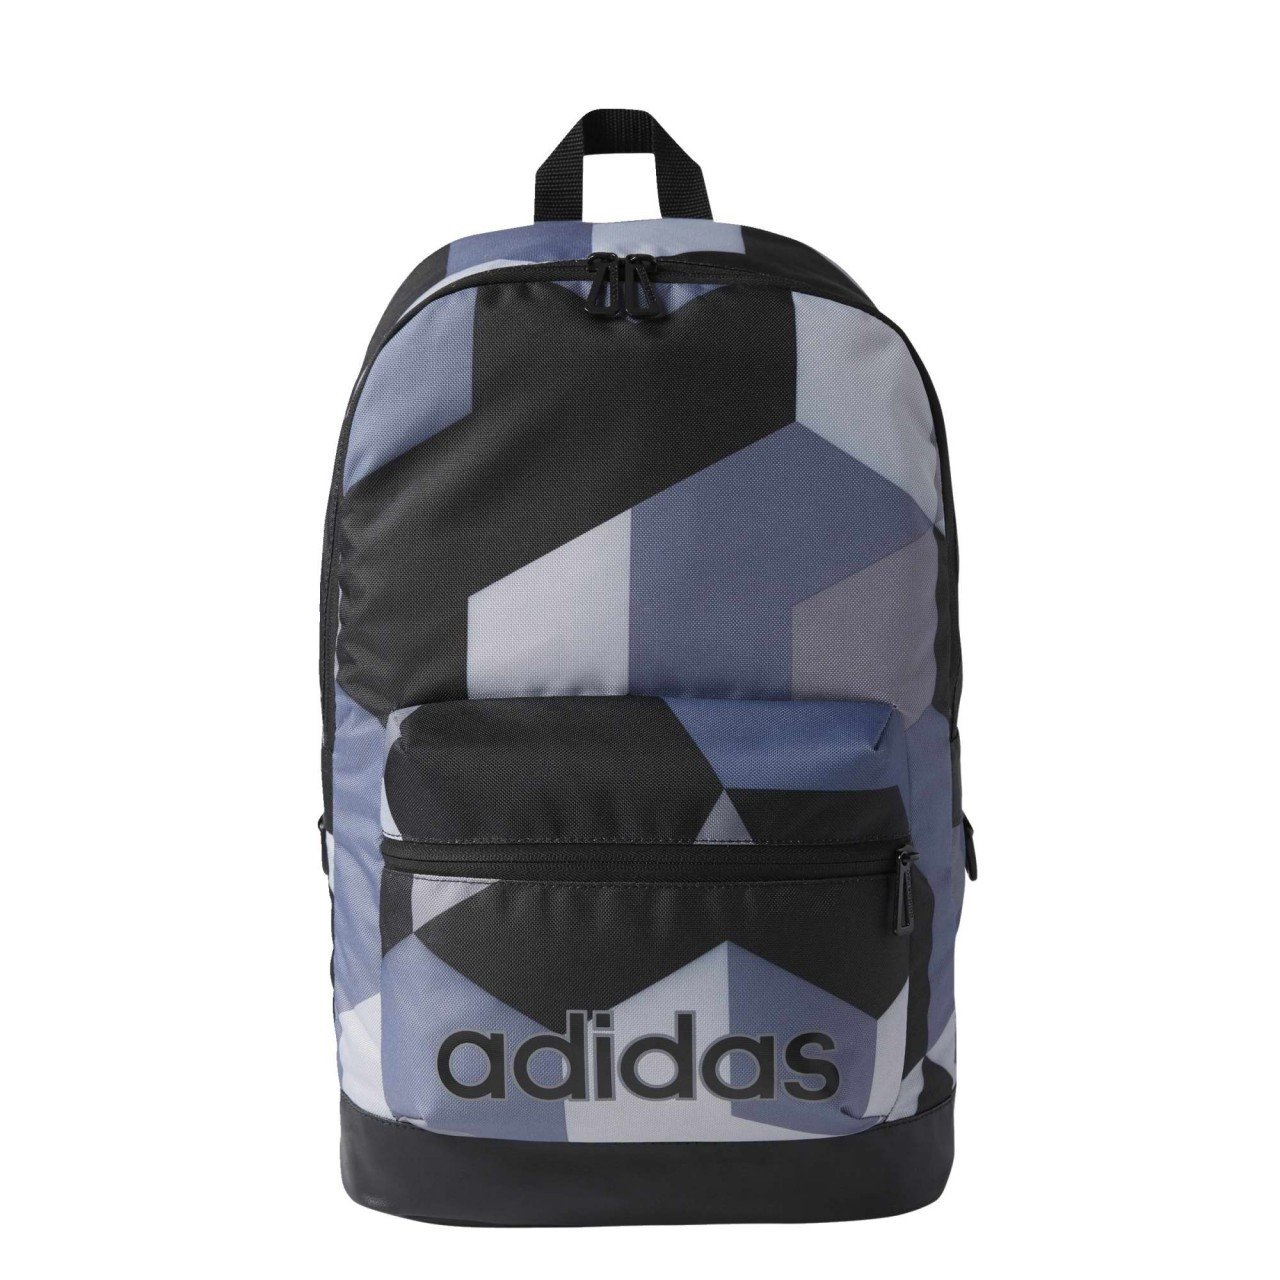 adidas BP N Daily - Backpack, Man, Black (Black), NS BQ1176